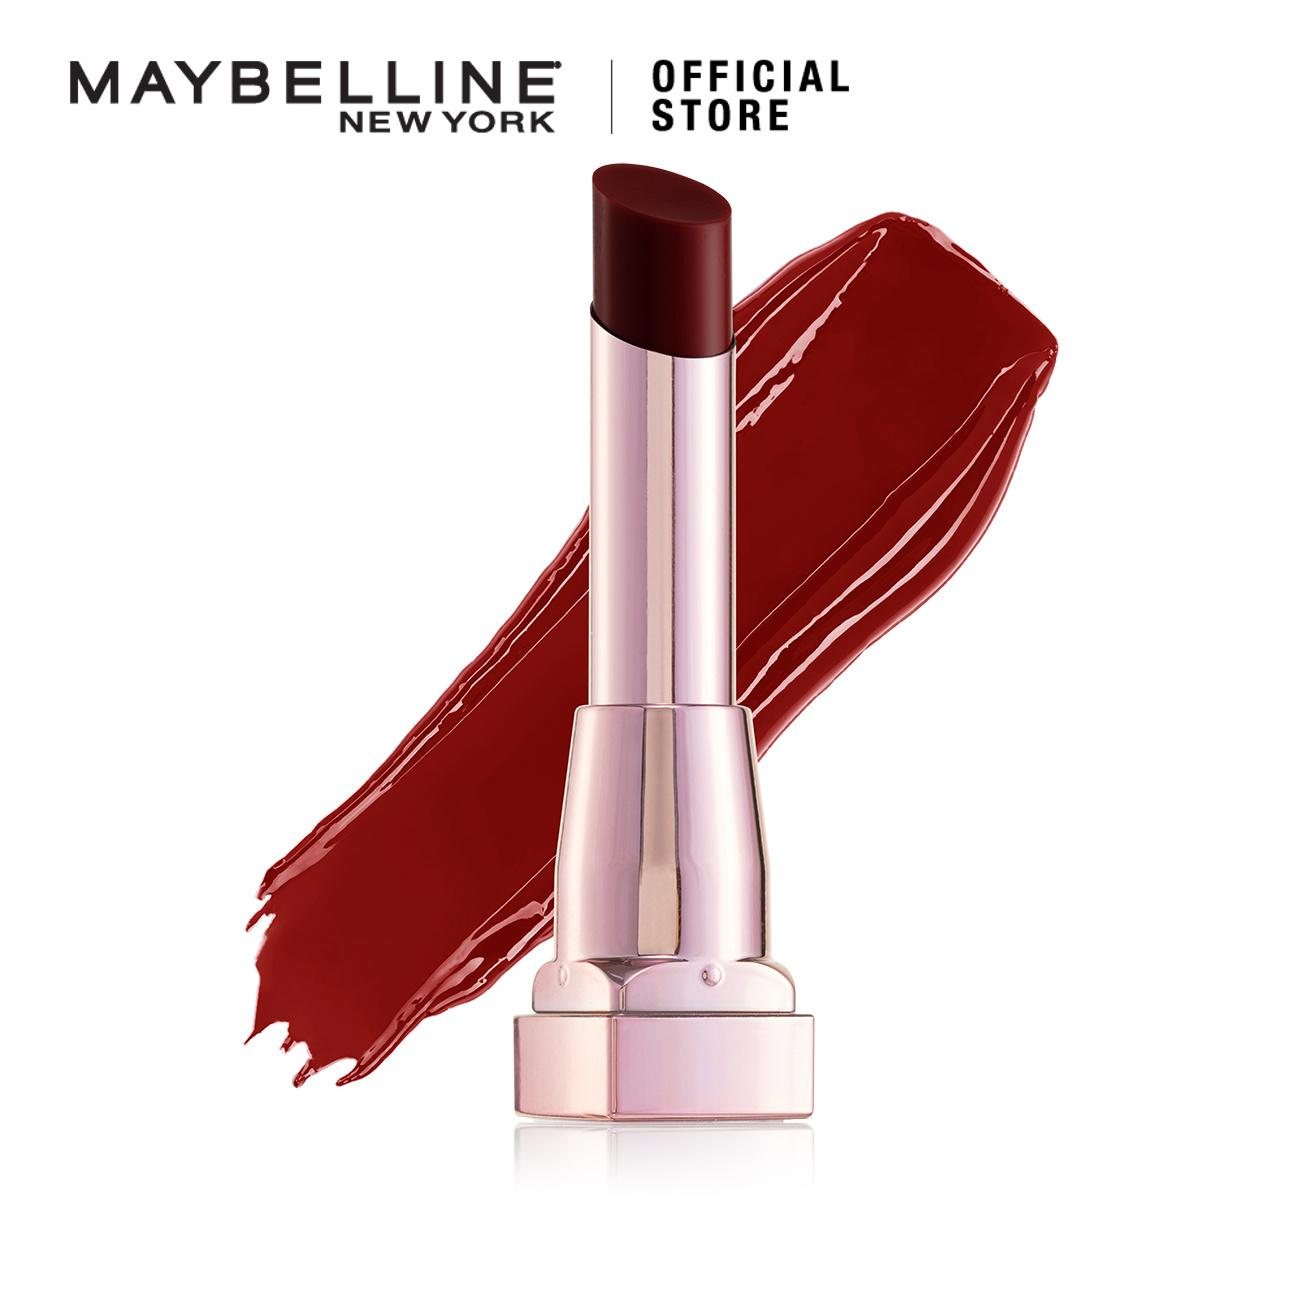 Maybelline Shine Compulsion Lipstick By Maybelline.